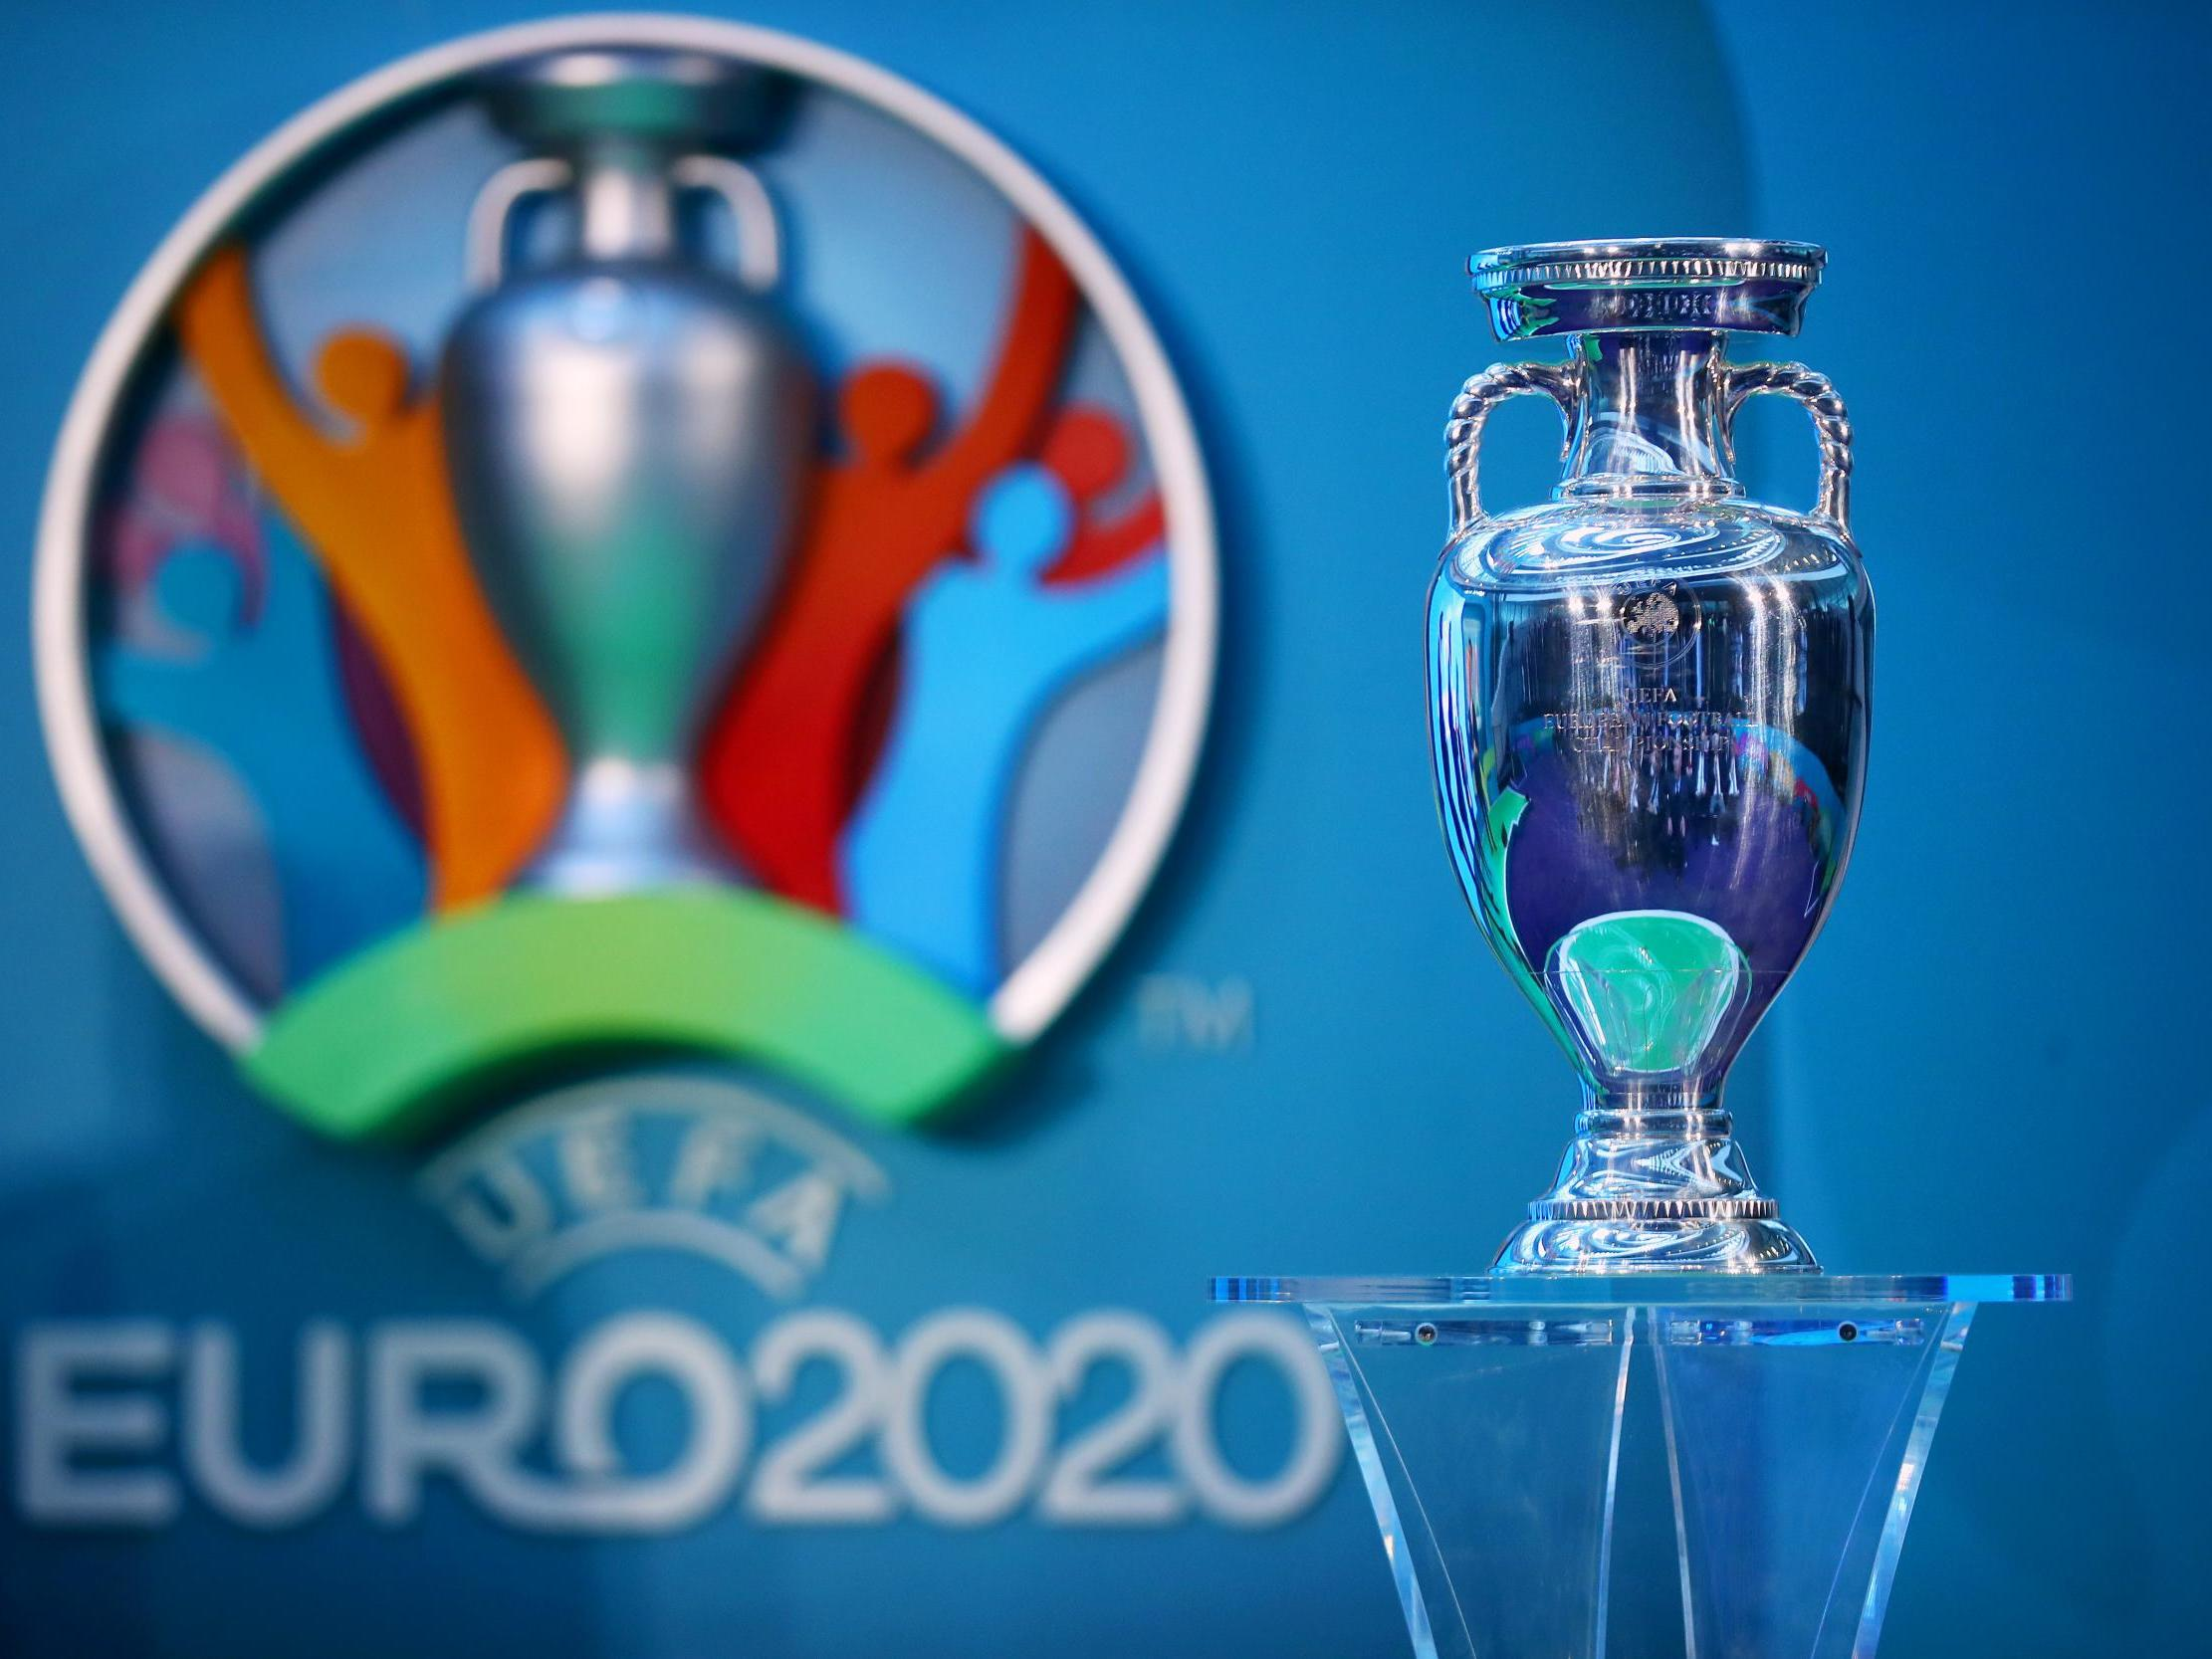 Euro 2020 fixtures: Full schedule, groups, dates and venues